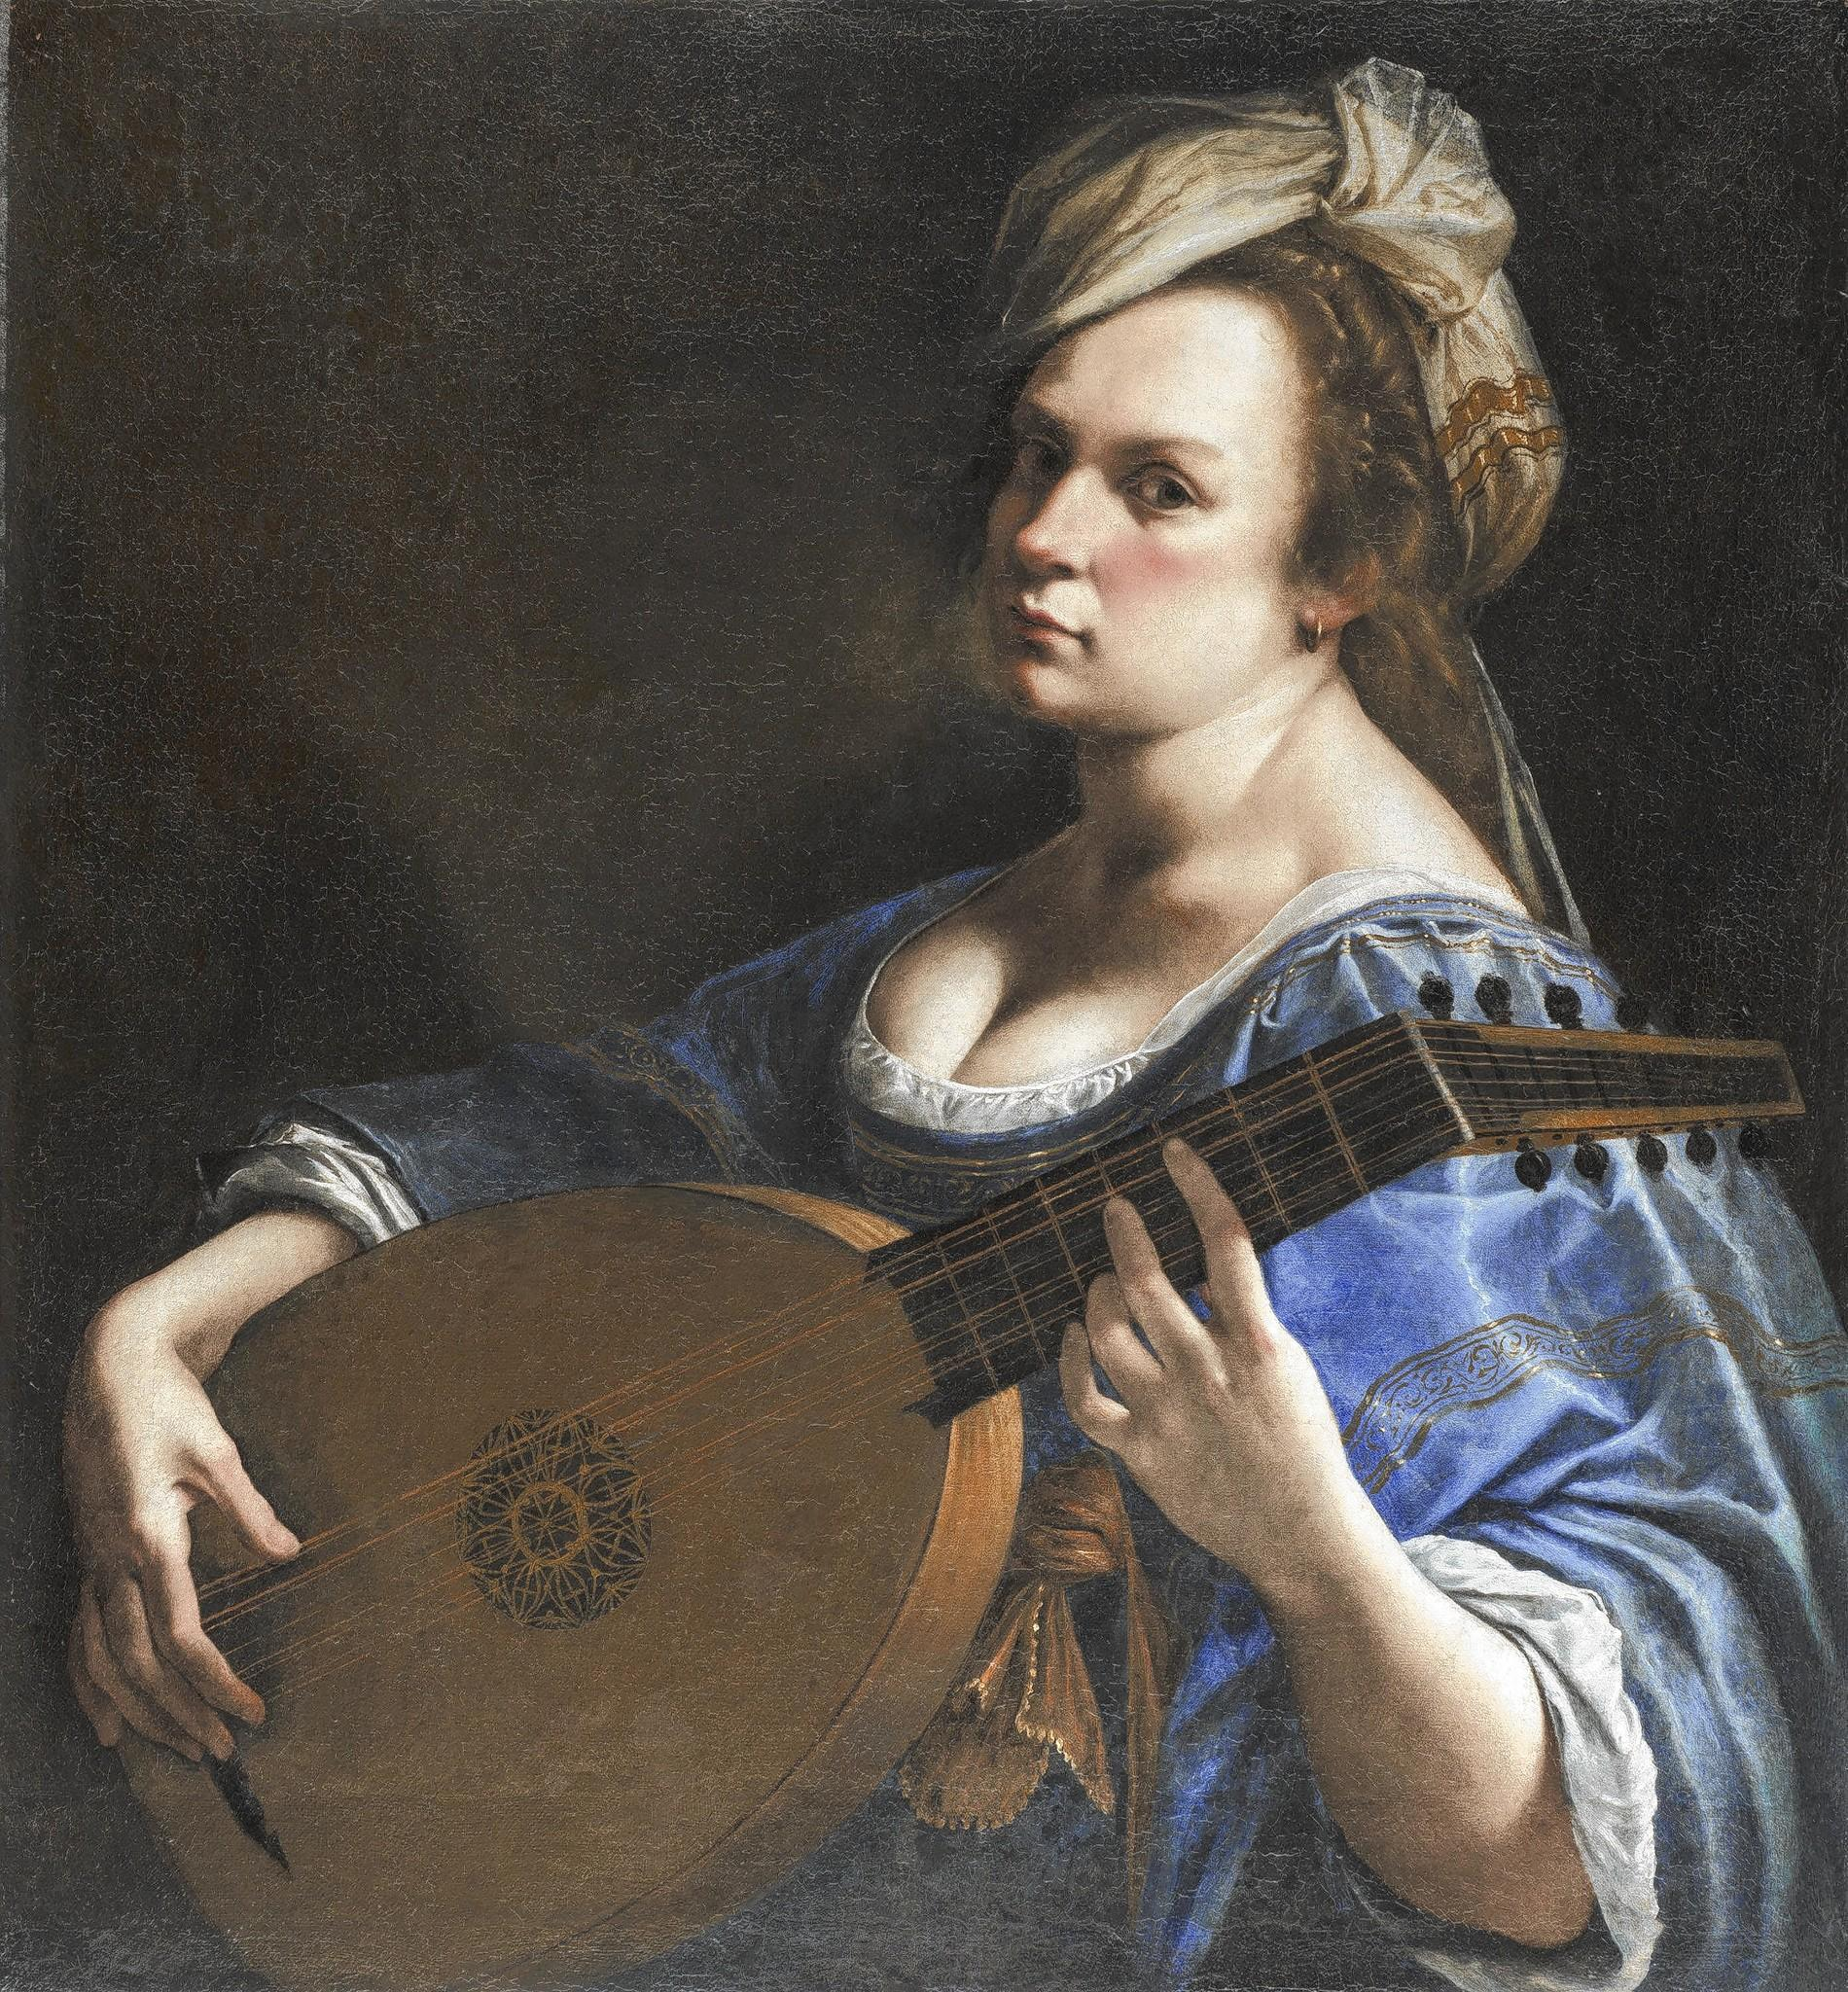 Artemisia Gentileschi's Self-Portrait as a Lute Player, c. 1616-18, oil on canvas, Wadsworth Atheneum Museum of Art, Charles H. Schwartz Endowment Fund, 2014.4.1